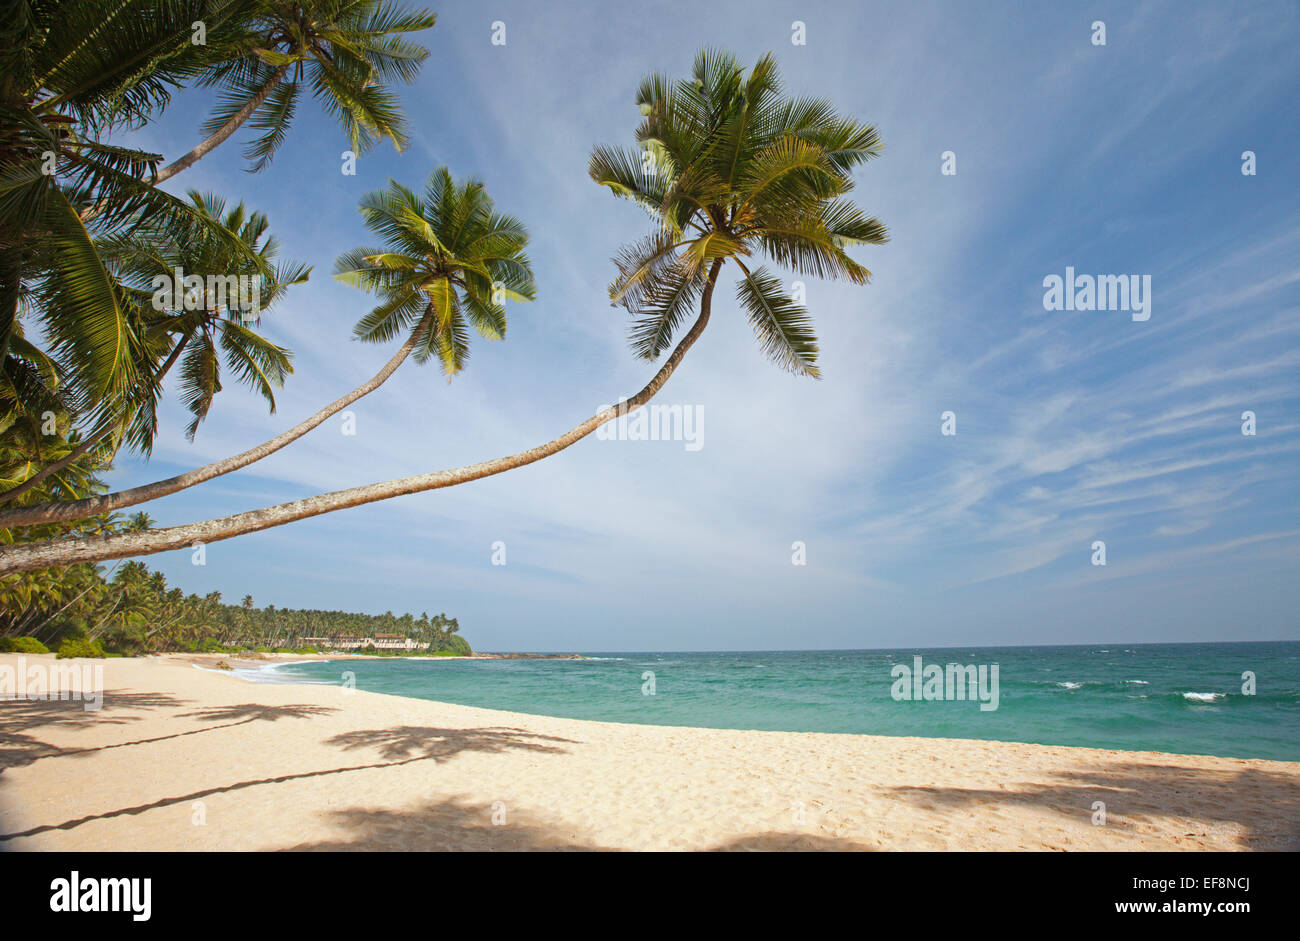 DESERTED BEACH IN TANGALLA WITH PALM TREES - Stock Image